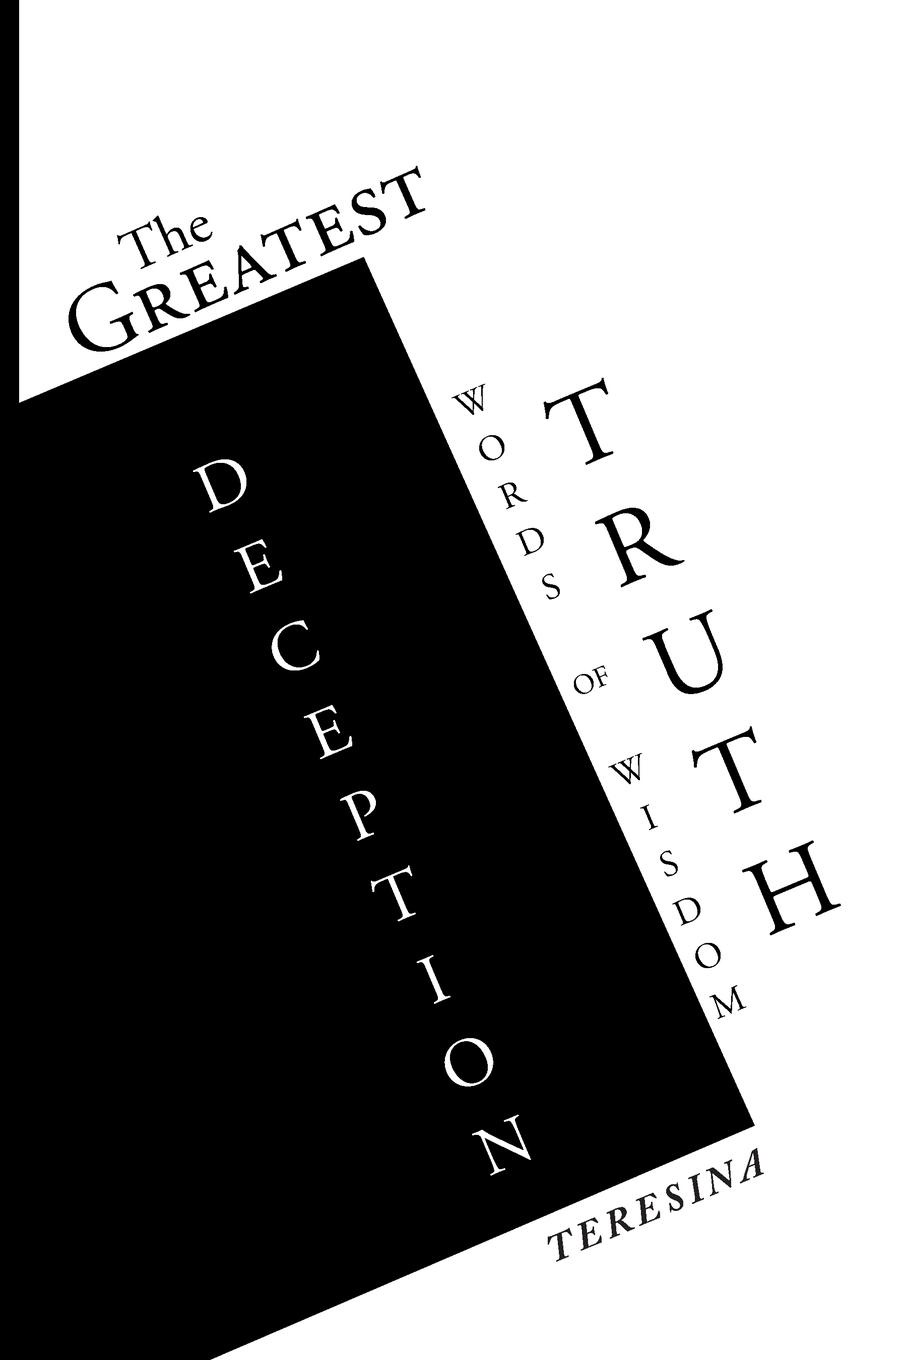 TERESINA The Greatest Truth Deception. Words of Wisdom: Words Of Wisdom the wisdom of yoga